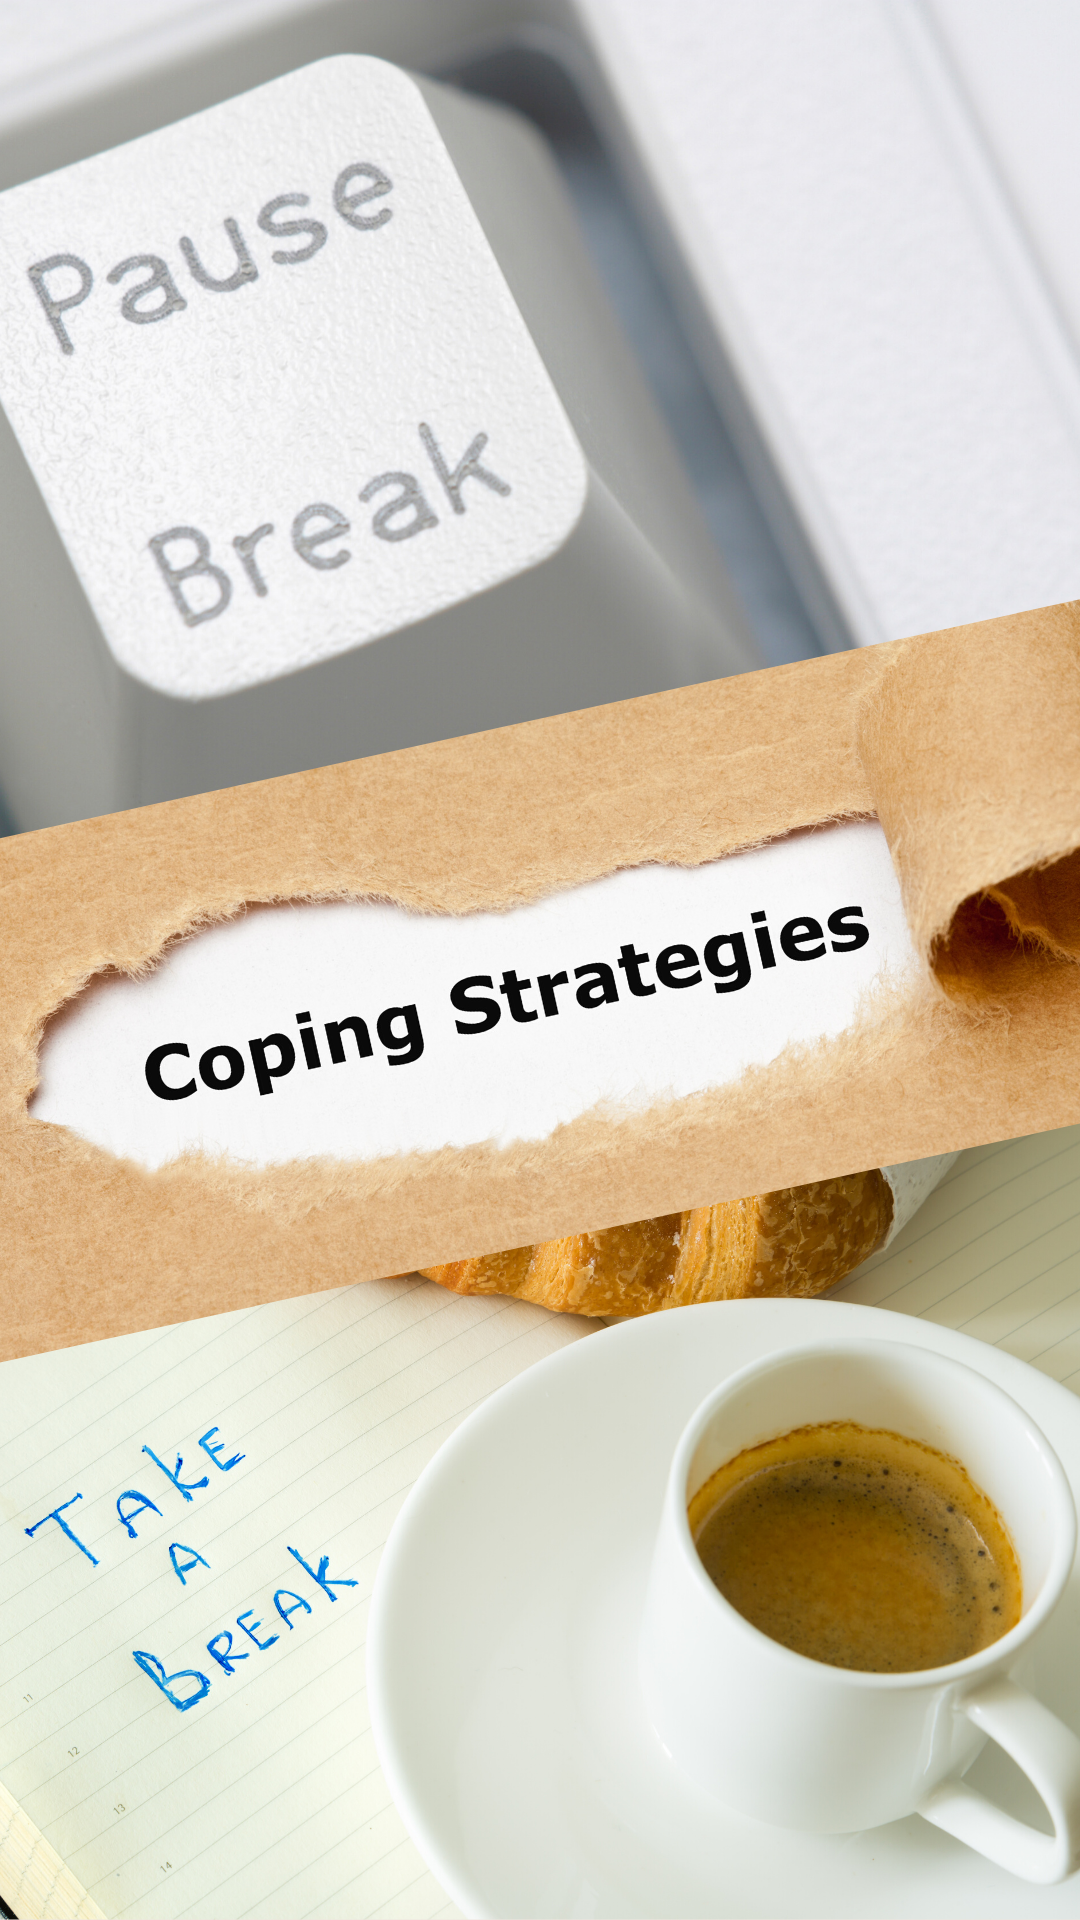 What Can I Do to Cope with Community Stress